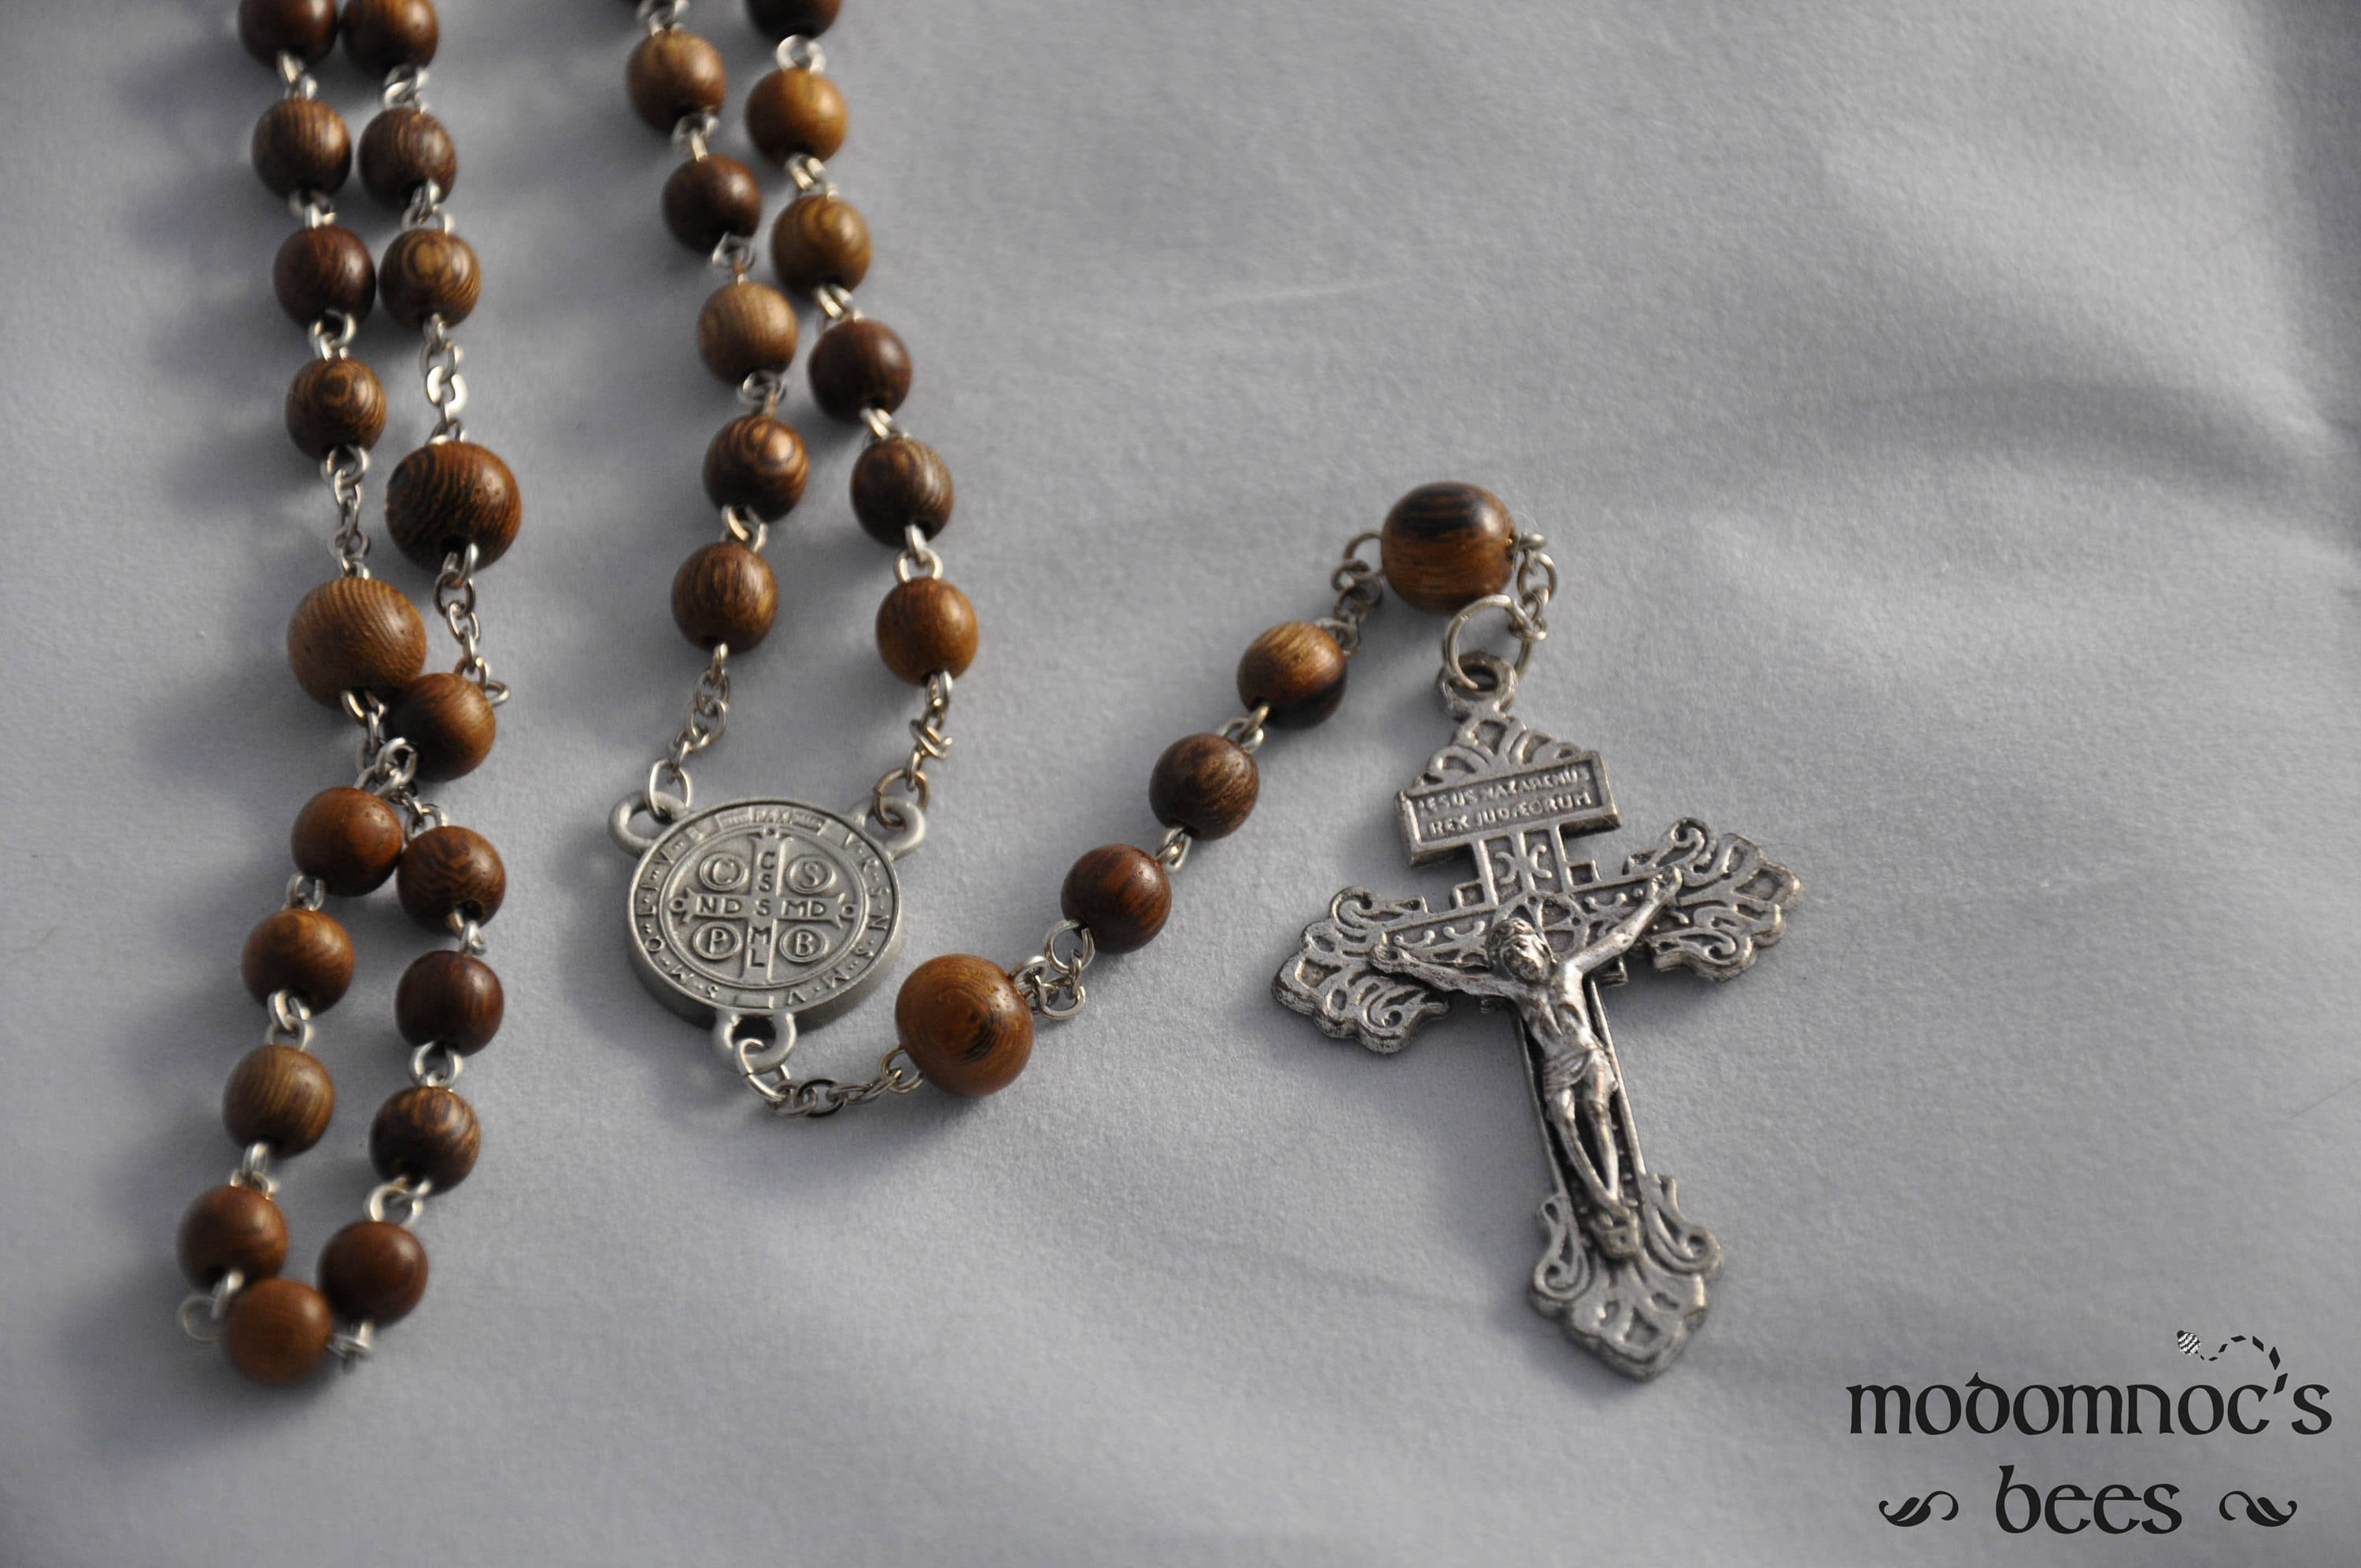 sufferers medallion products relic benito benedict chaplet poison of saint rosary patron monks st san